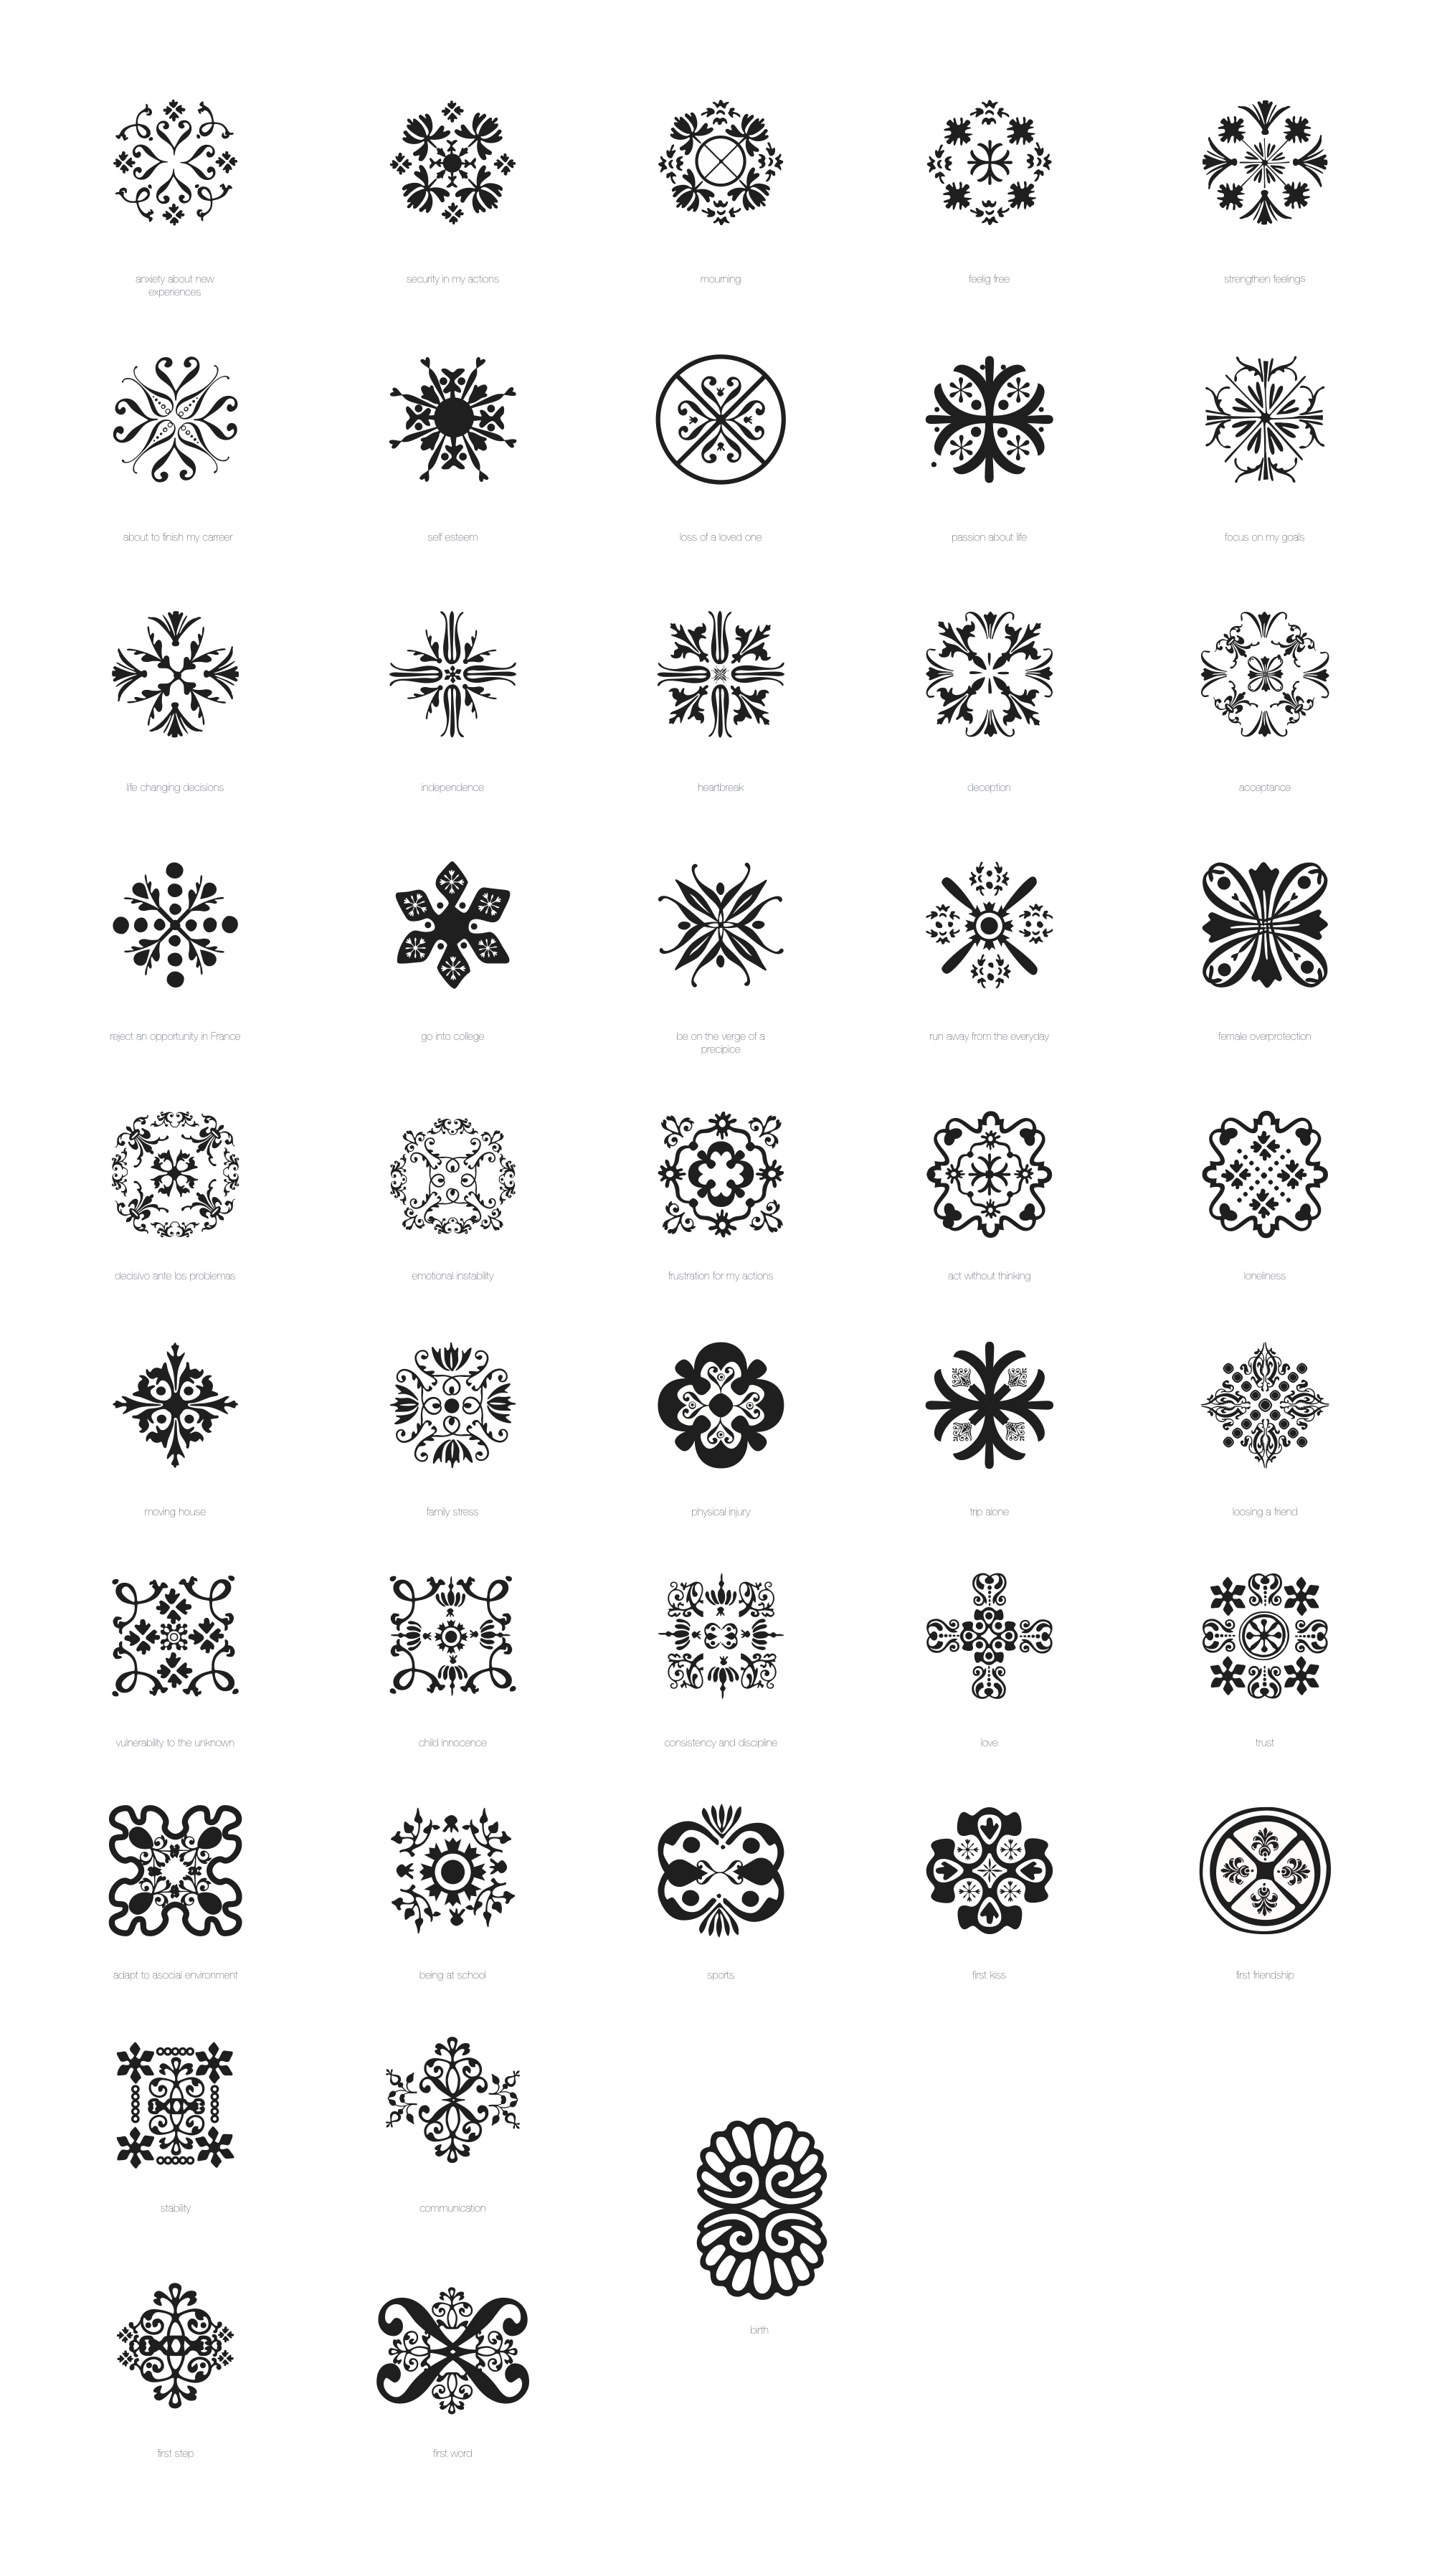 Italian Symbols And Meanings Pictures to Pin on Pinterest ...